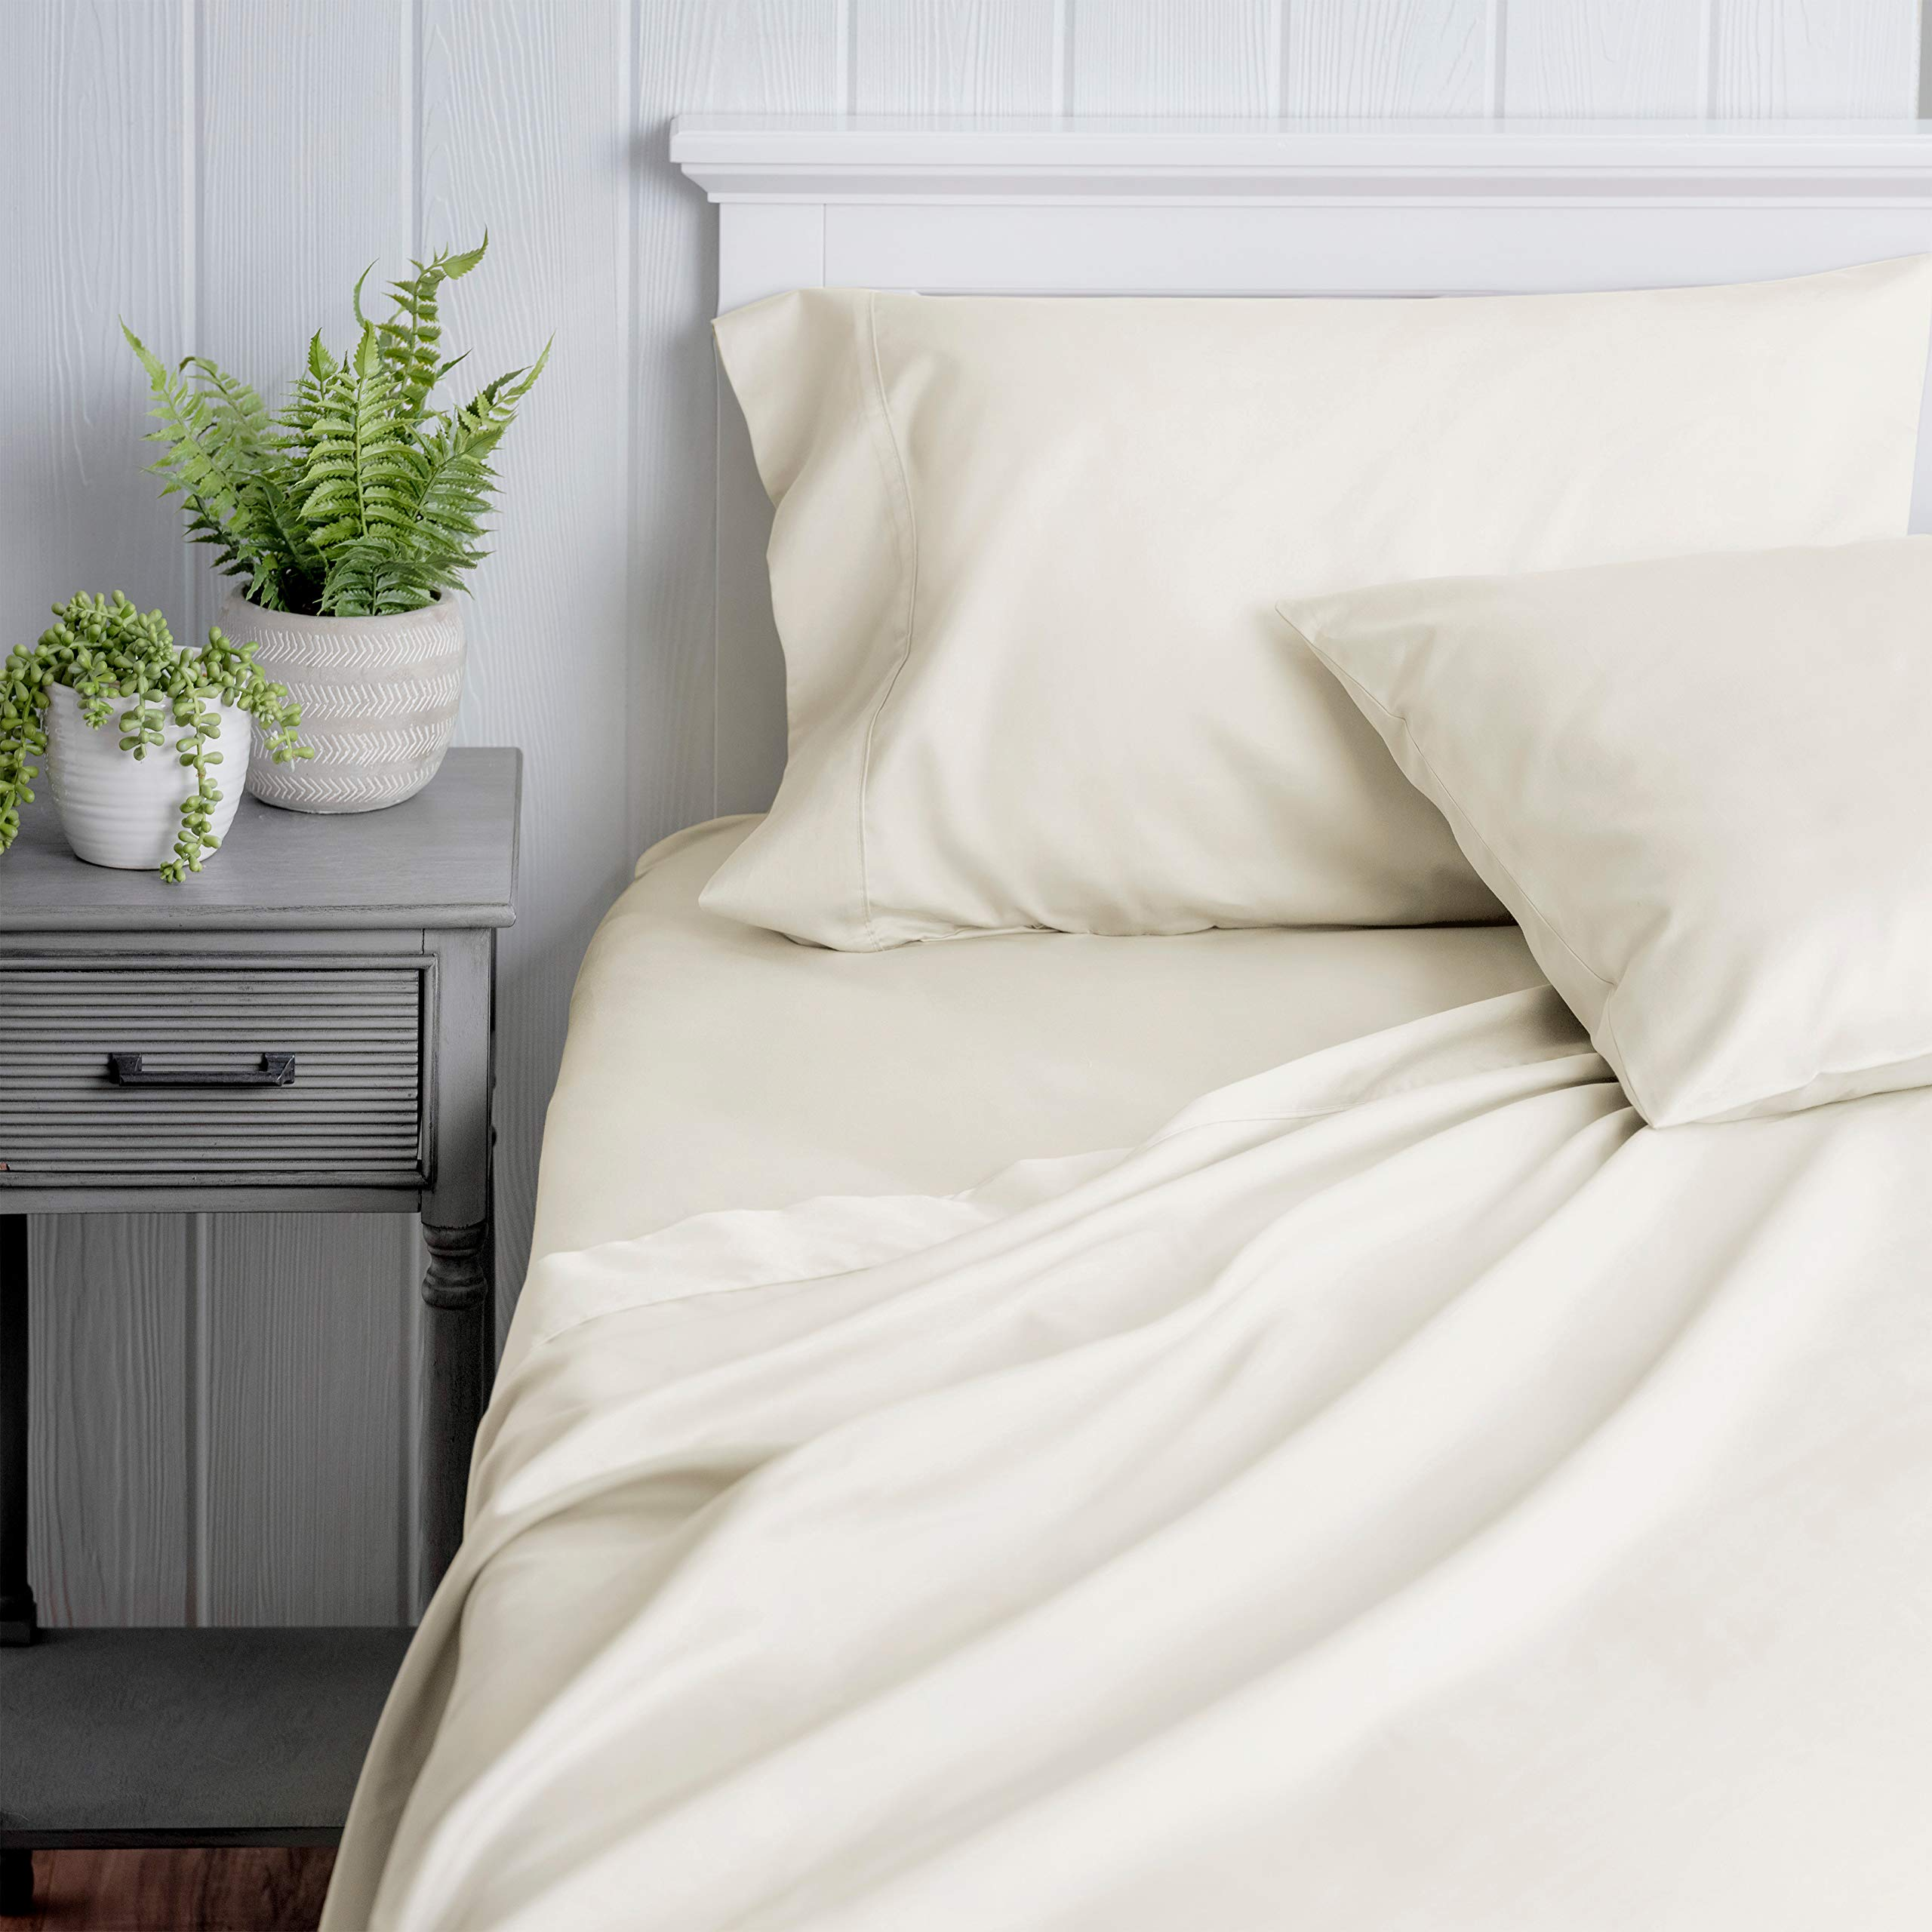 Welhome 100% Cotton Sateen King Sheet Set - 4 Piece - Luxurious - Super Soft & Cozy - Durable - Classic - All Season Bed Sheet Set - Deep Pocket - Easy fit -Ivory